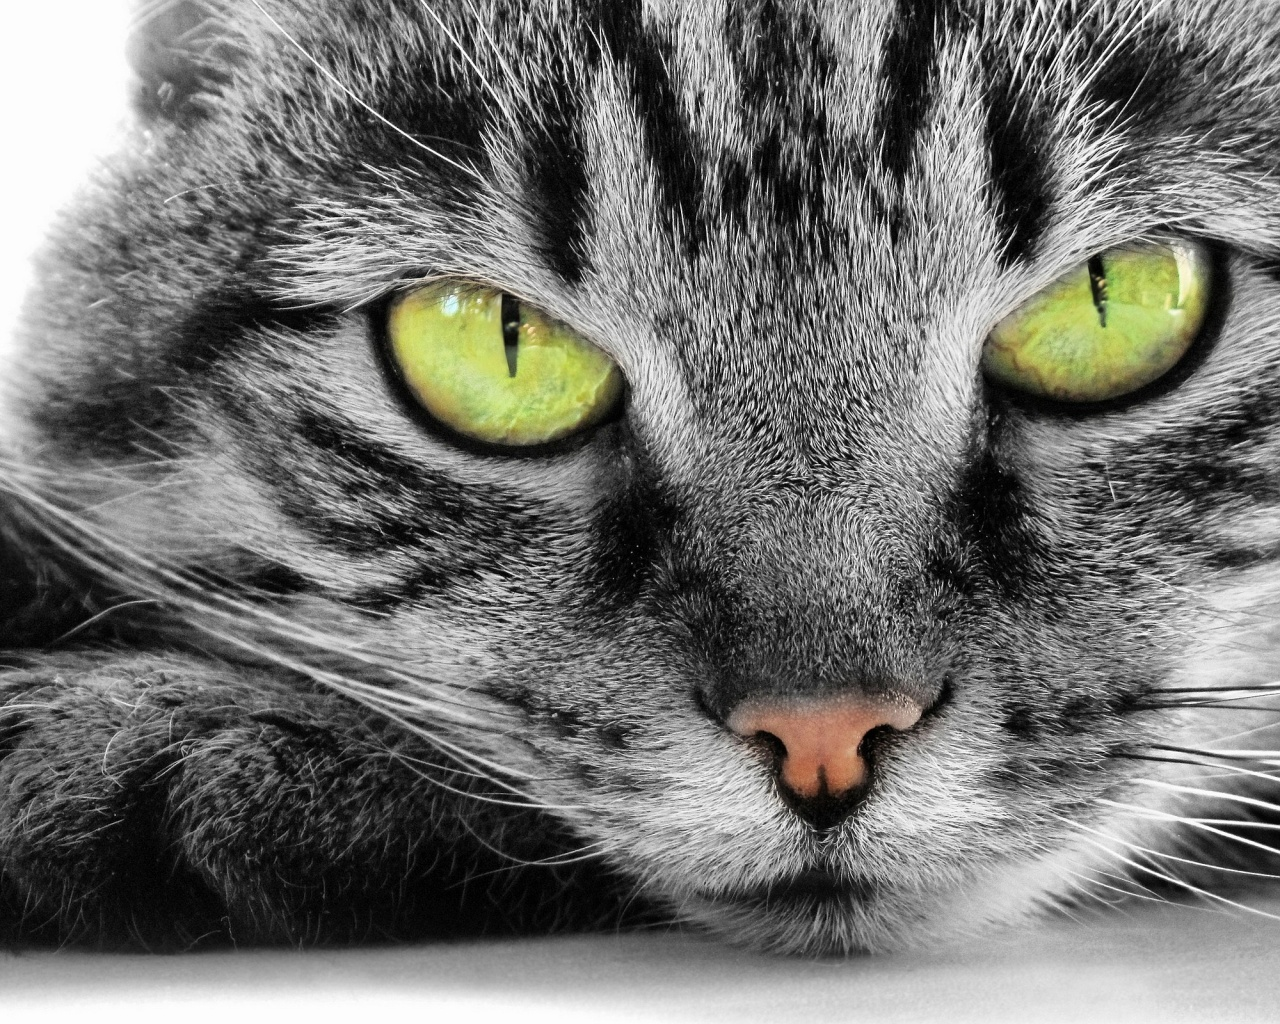 Description: The Wallpaper above is Green Eye Cat Wallpaper in Resolution 1280x1024. Choose your Resolution and Download Green Eye Cat Wallpaper